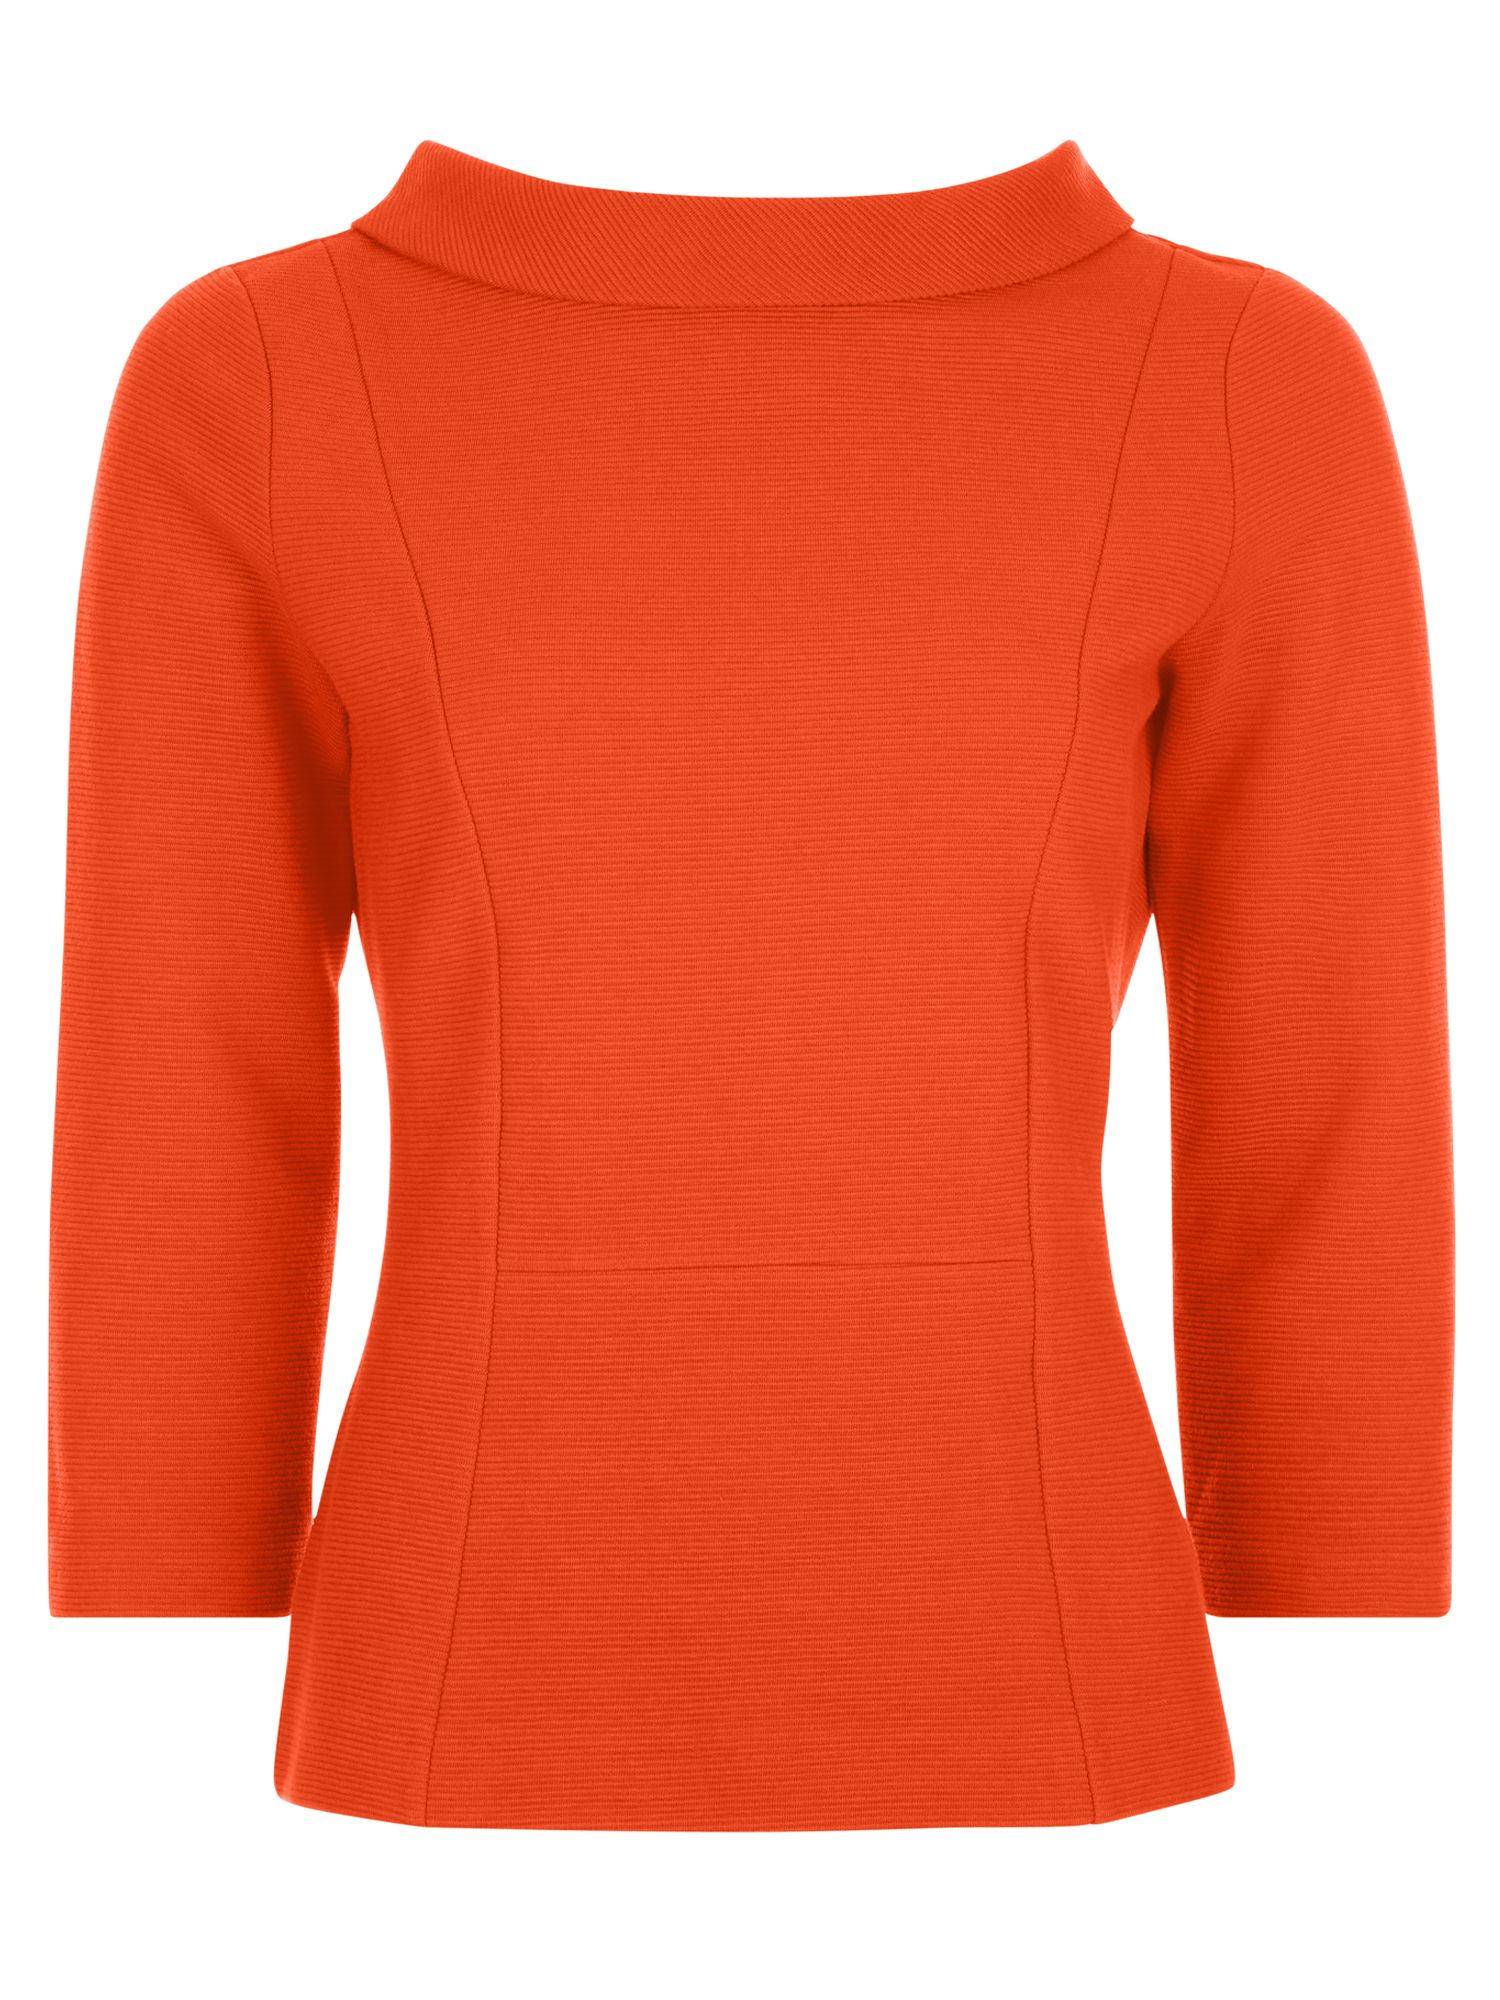 Hobbs Cordelia Top, Orange